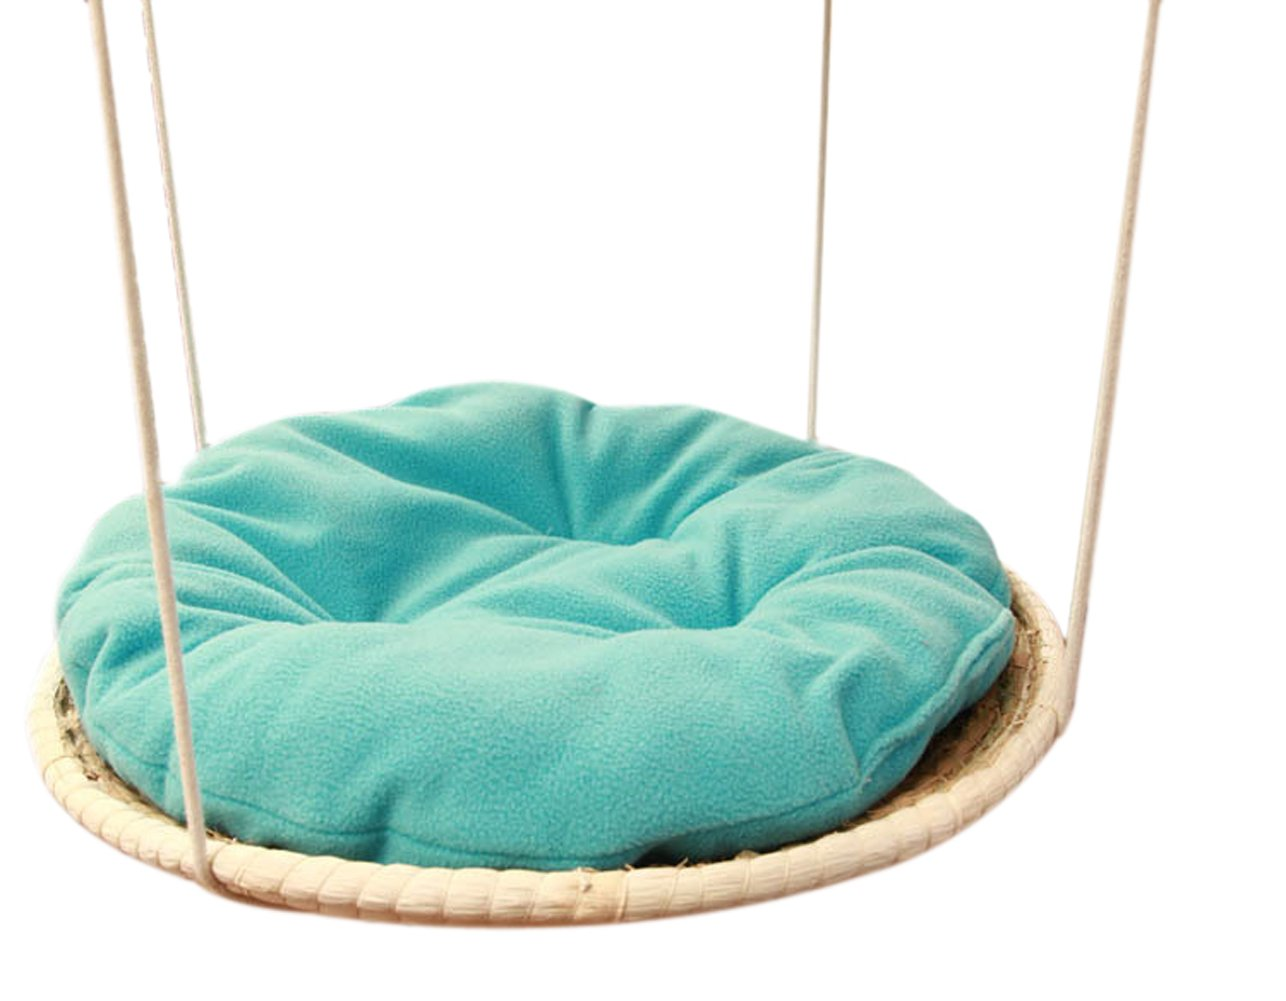 Chickle Hand Made Woven Cat House Bed Hanging Hammock Pet Supplies for Small Animal by Chickle